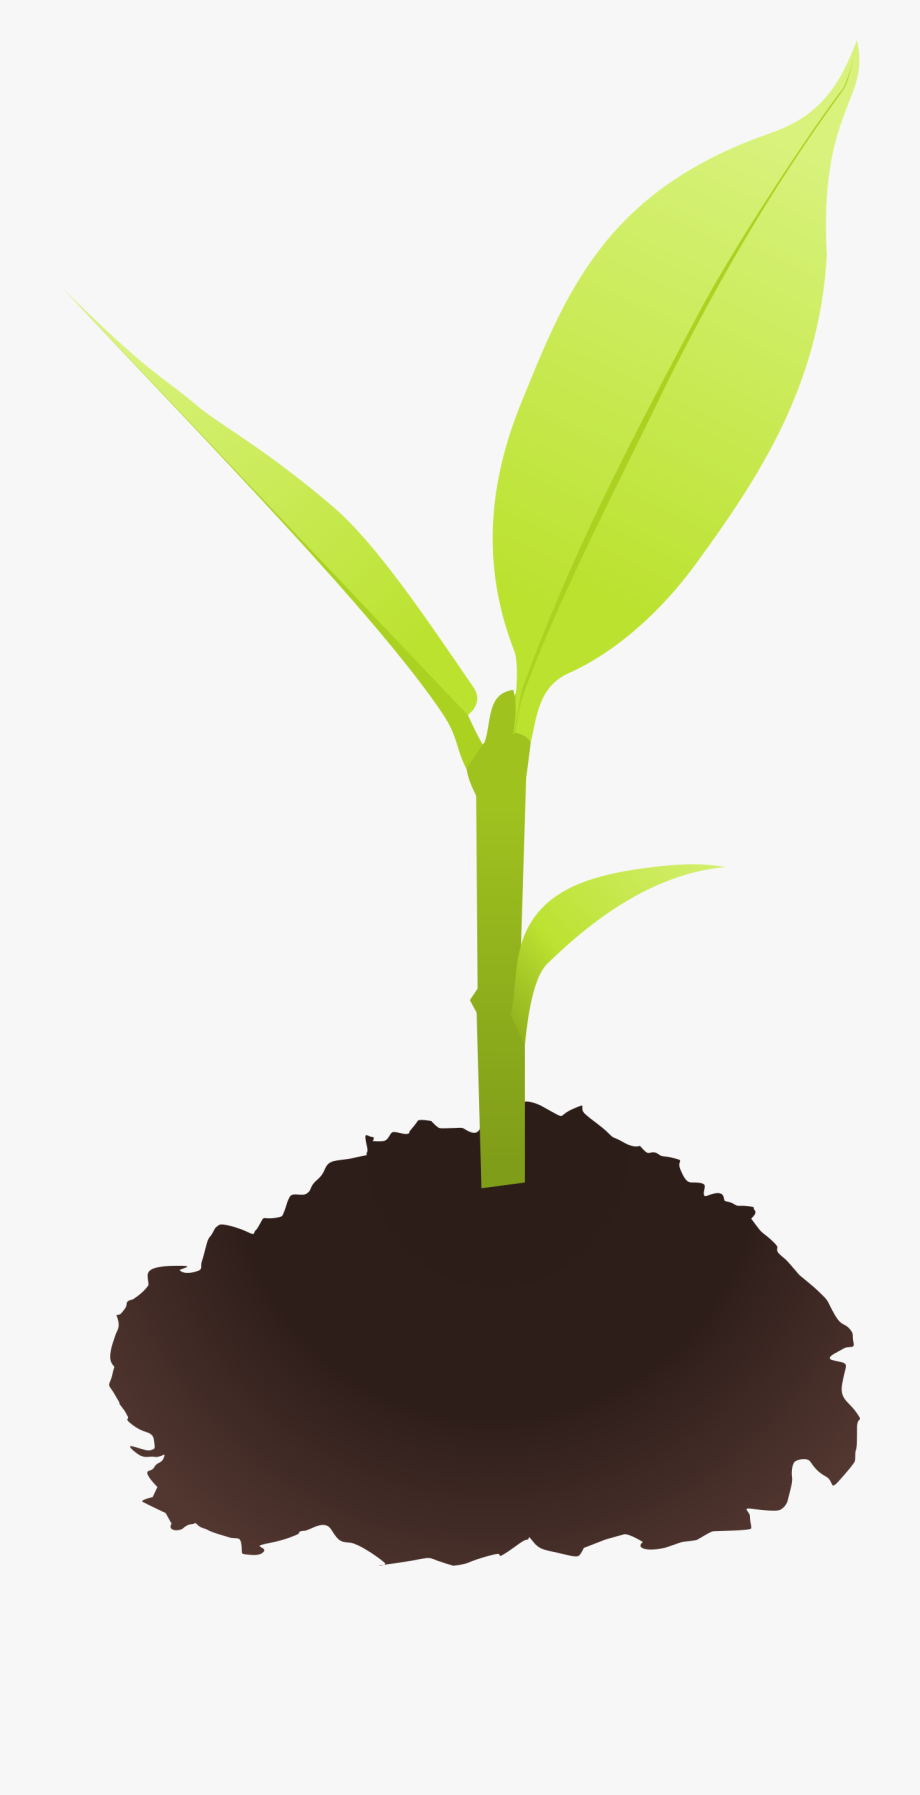 Seed small sprout free. Dirt clipart plant